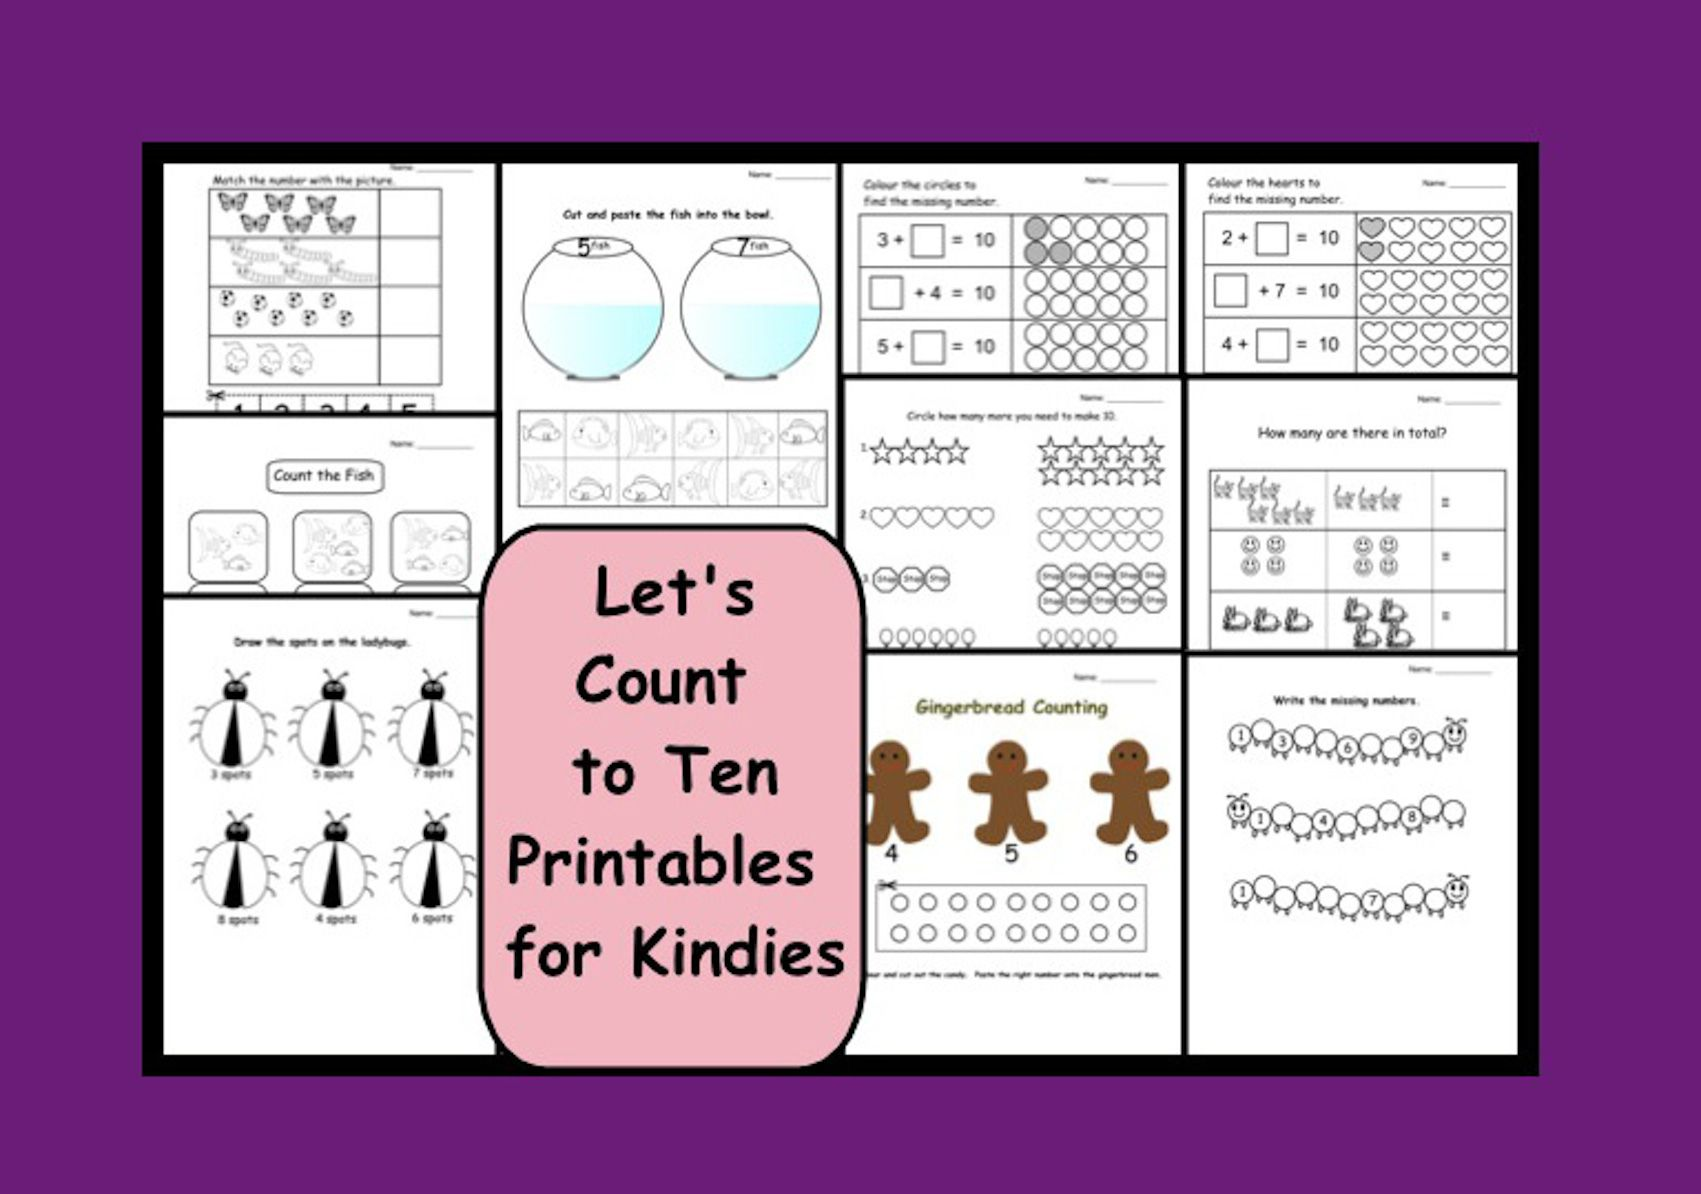 Let's Count to Ten Printable worksheets for kinders